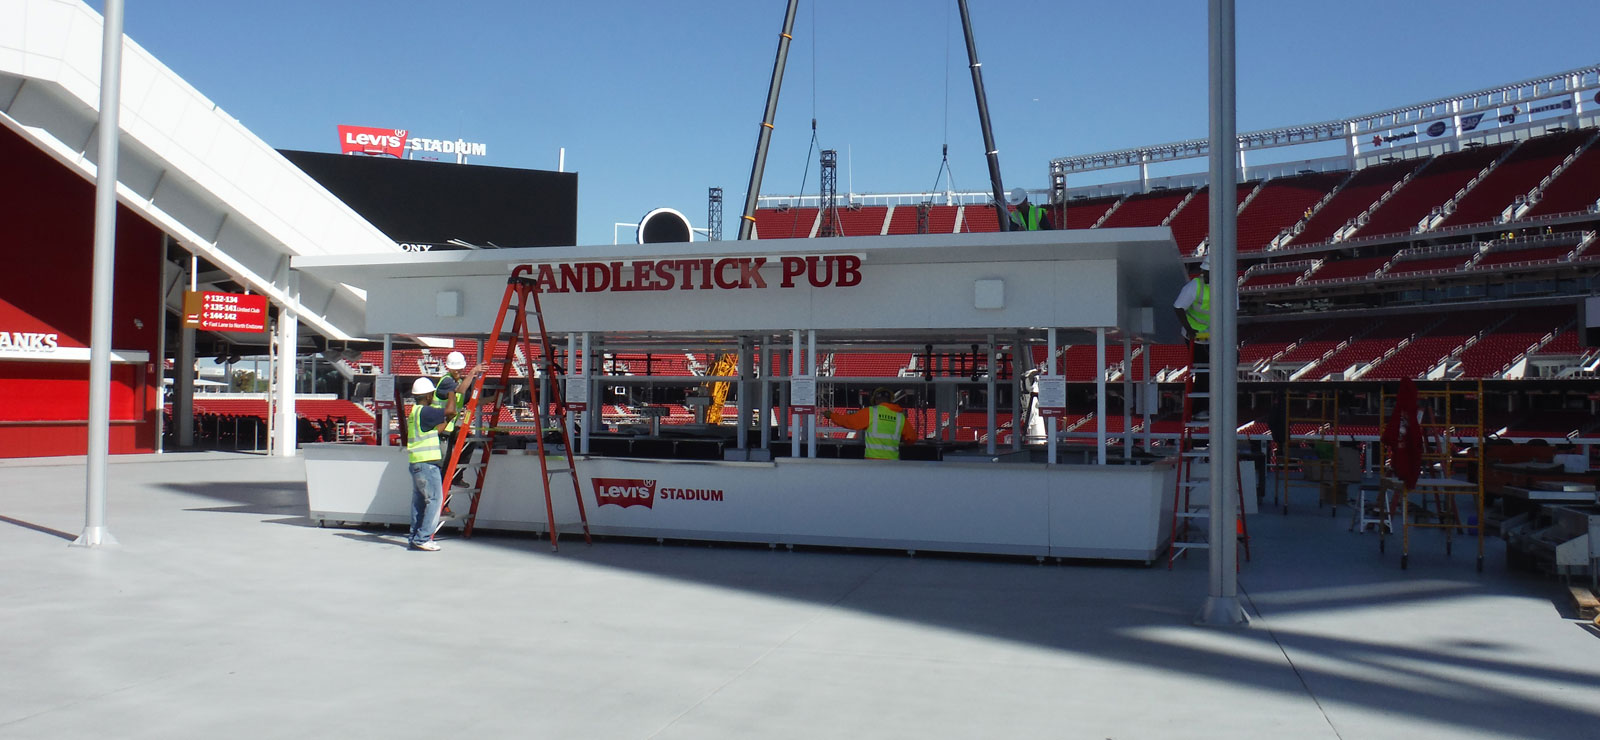 Candlestick Pub at Levi